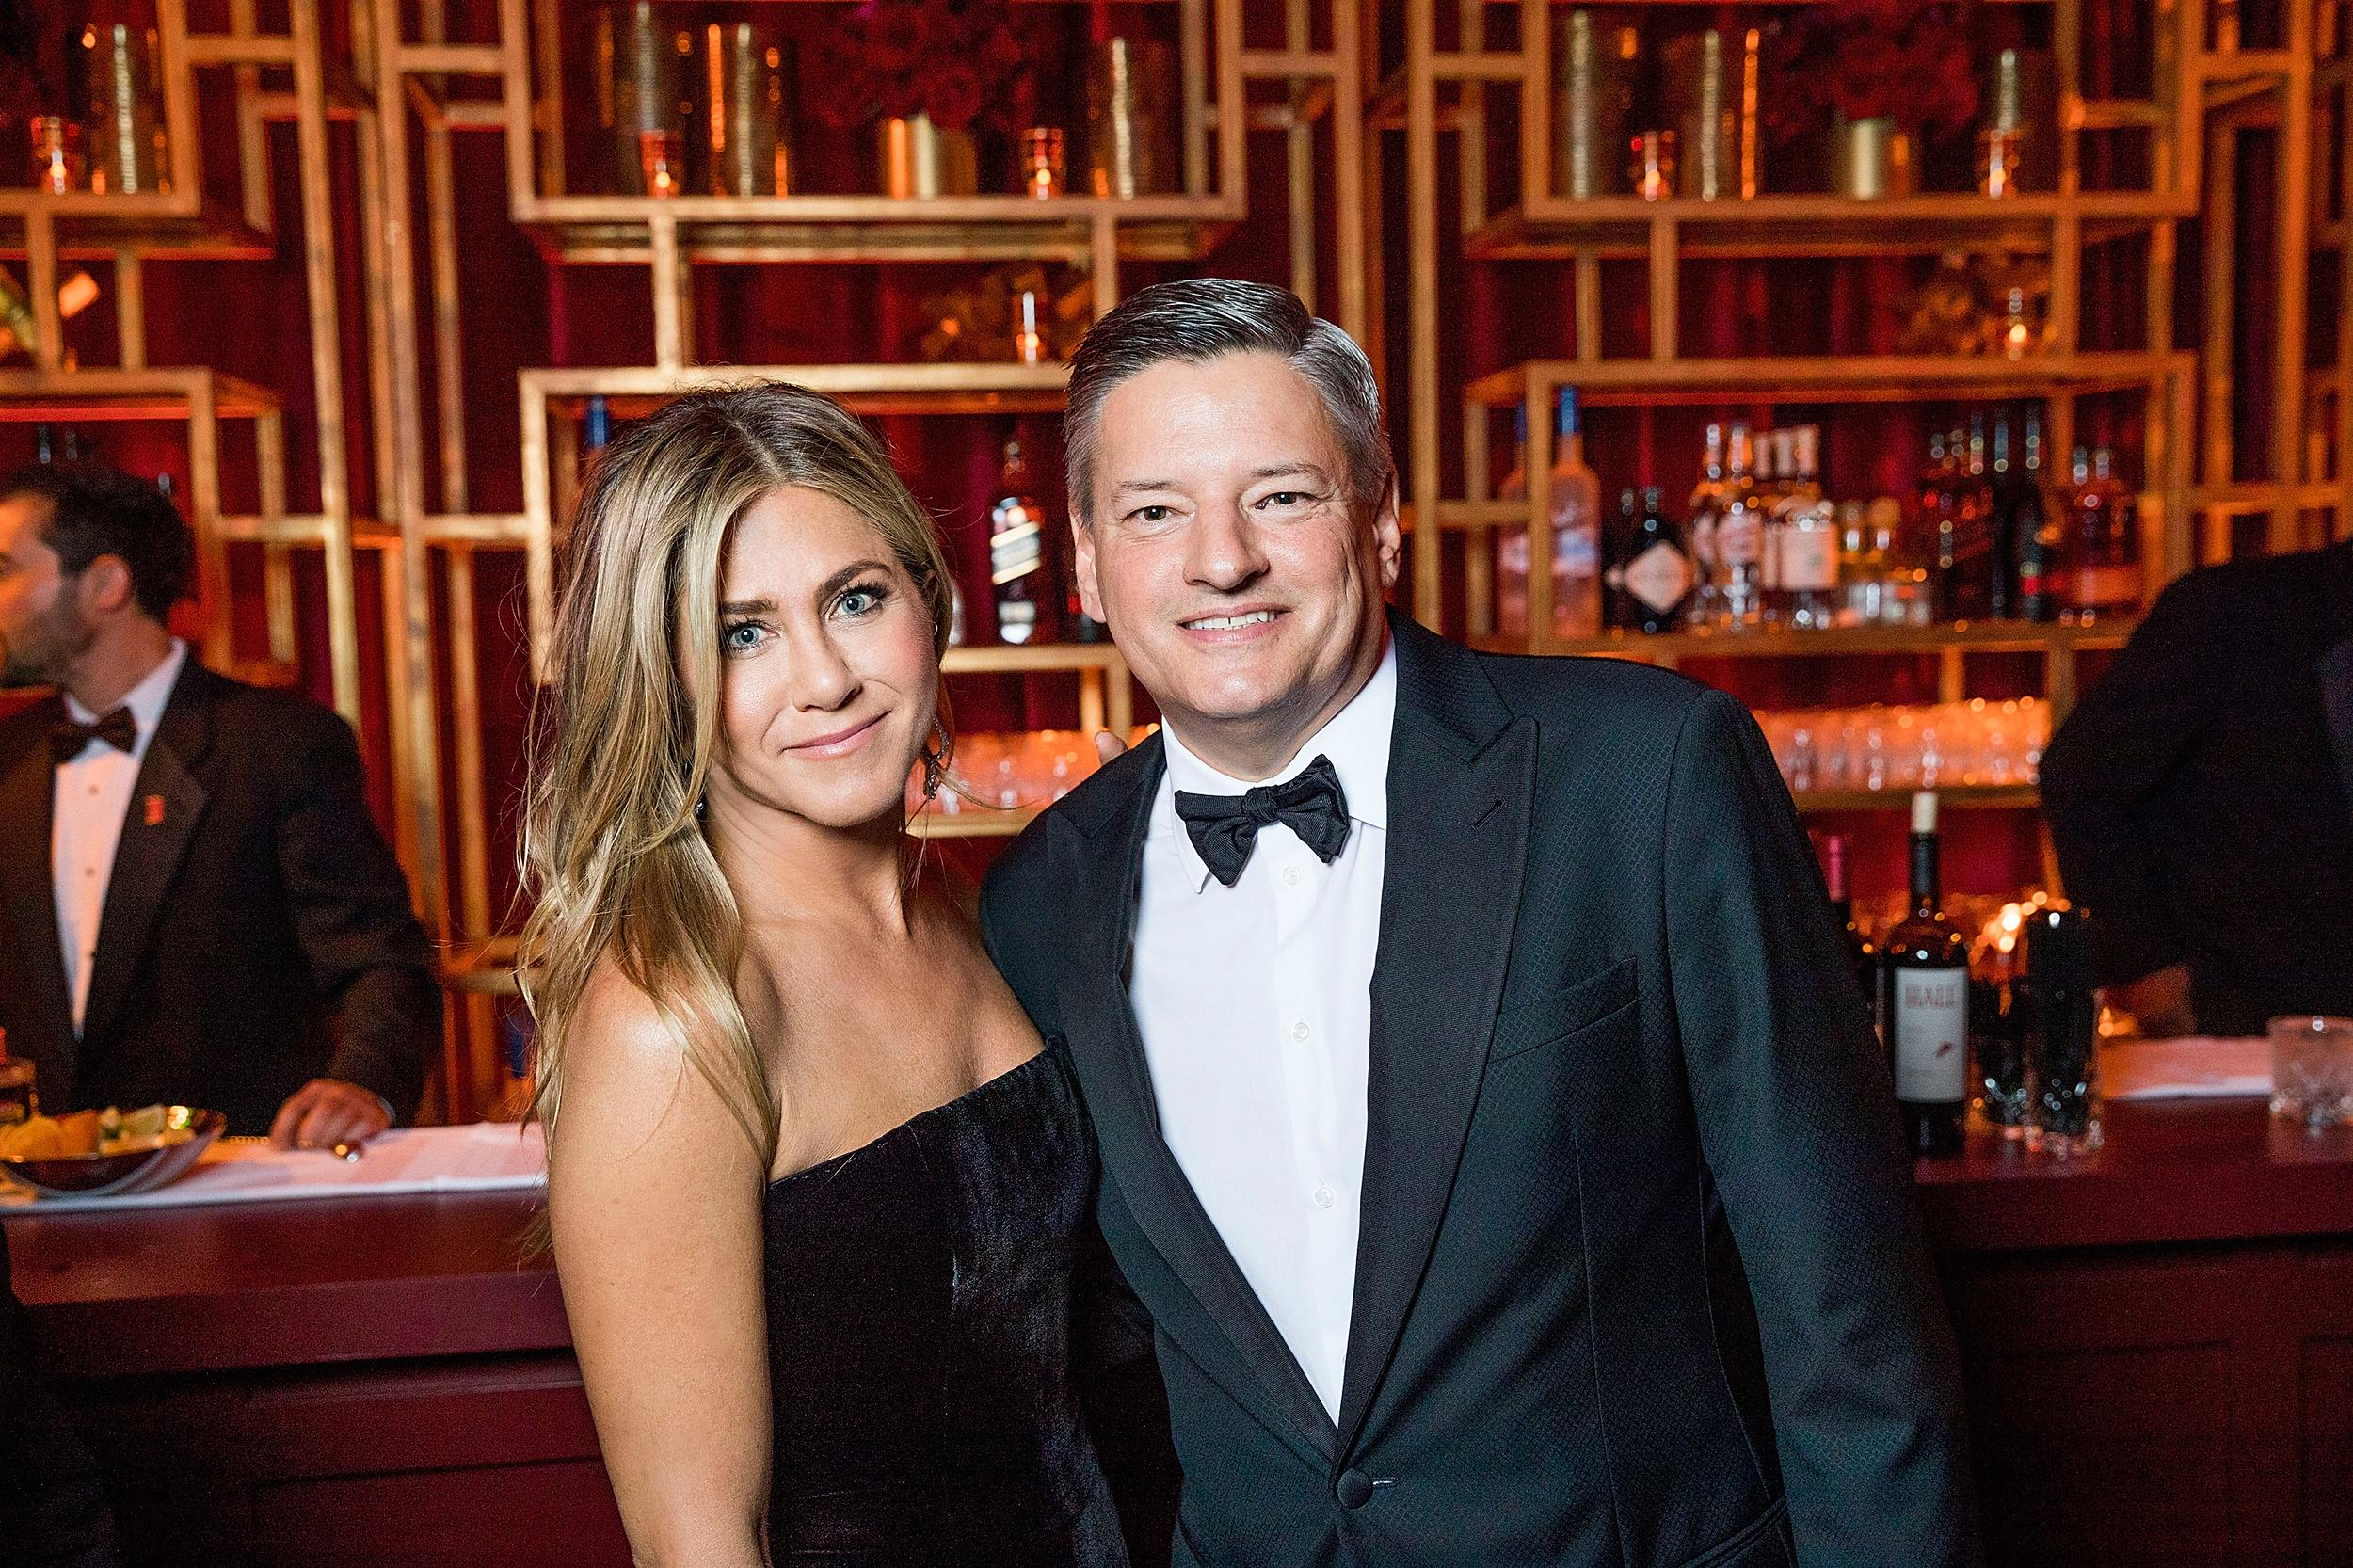 BEVERLY HILLS, CA - JANUARY 07: In this handout photo provided by Netflix,  Jennifer Aniston and Netflix Chief Content Officer, Ted Sarandos attend the Netflix Golden Globes after party at Waldorf Astoria Beverly Hills on January 7, 2018 in Beverly Hills, California.  (Photo by Netflix via Getty Images)